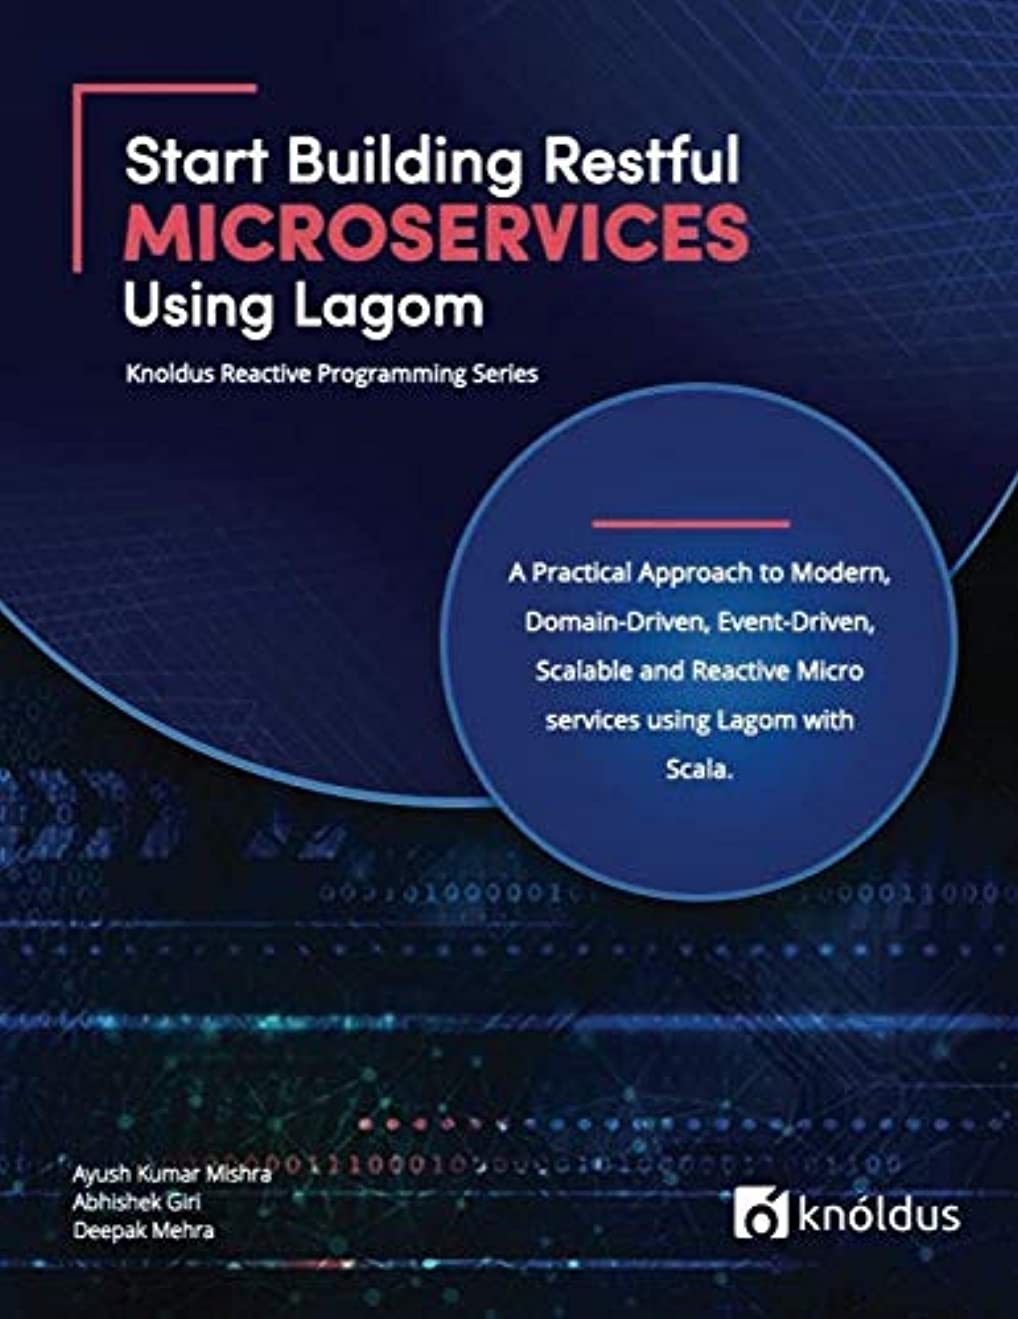 時計フォーマルピルStart Building RESTful Microservices using Lagom: A Practical Approach to Modern, Domain-Driven, Event-Driven, Scalable and Reactive Microservices using Lagom with Scala (Knoldus Reactive Programming Series)